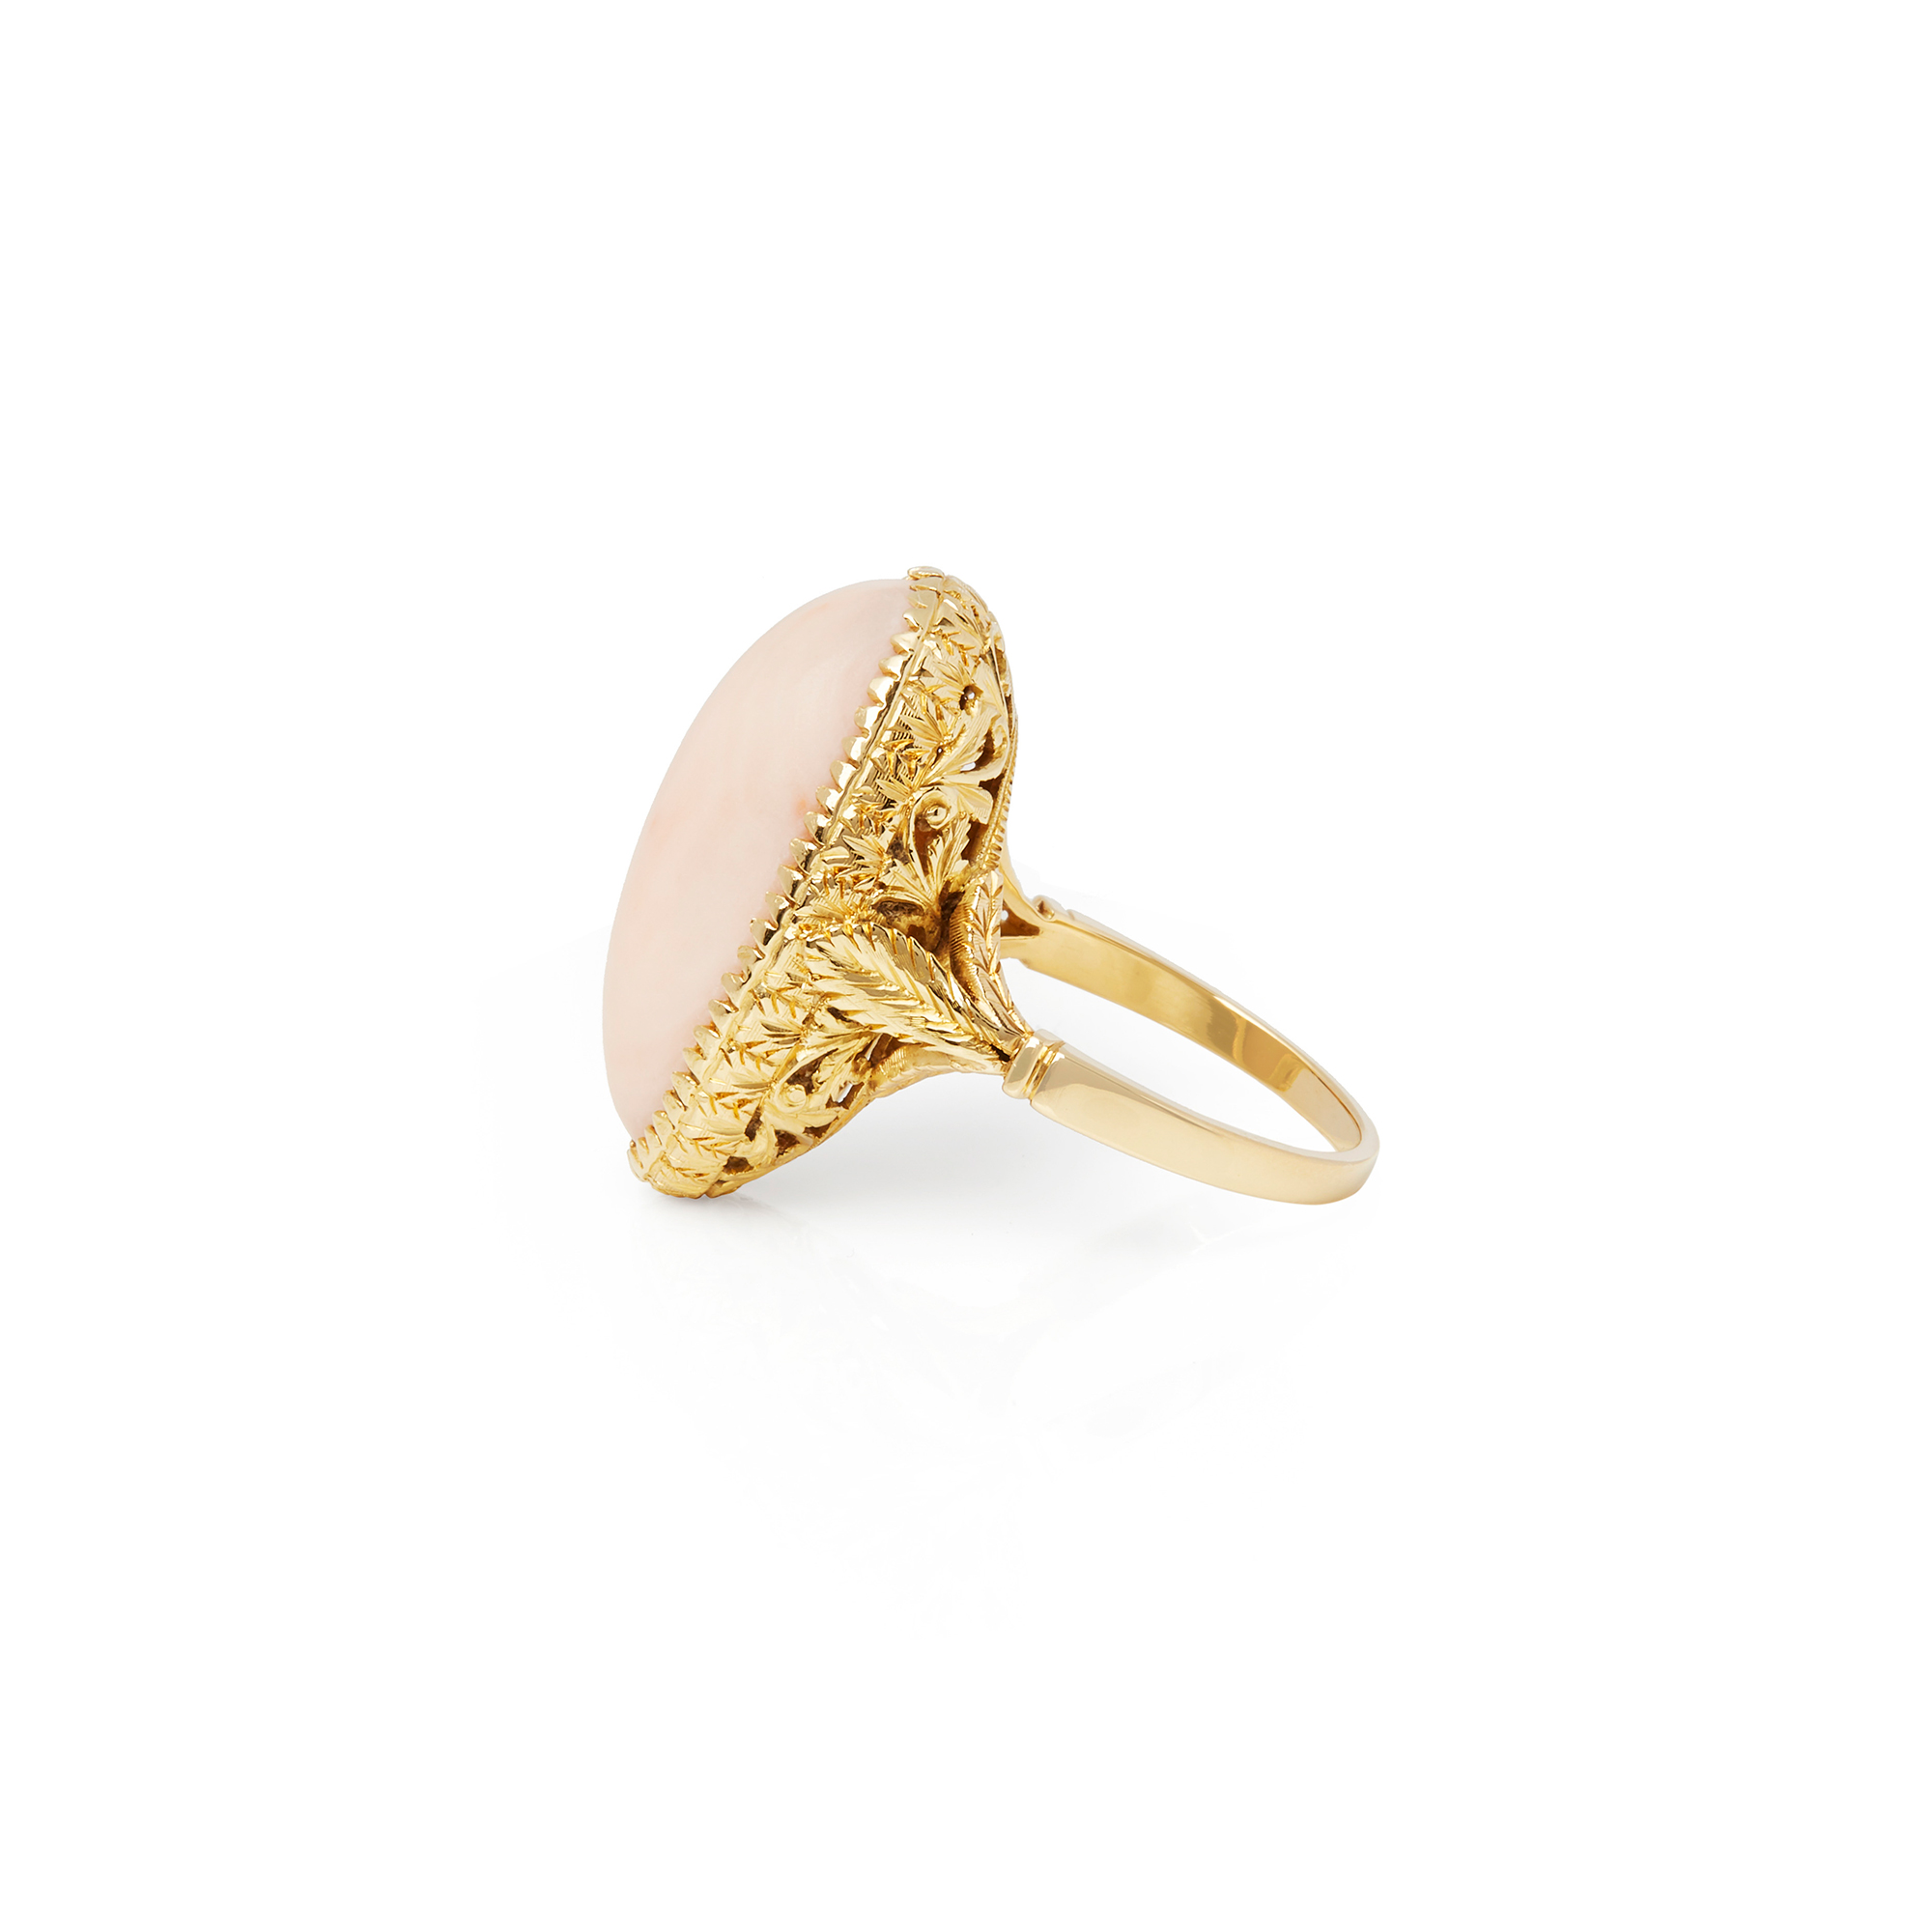 Unbranded 18ct Yellow Gold Pink Coral Ring - Image 4 of 6